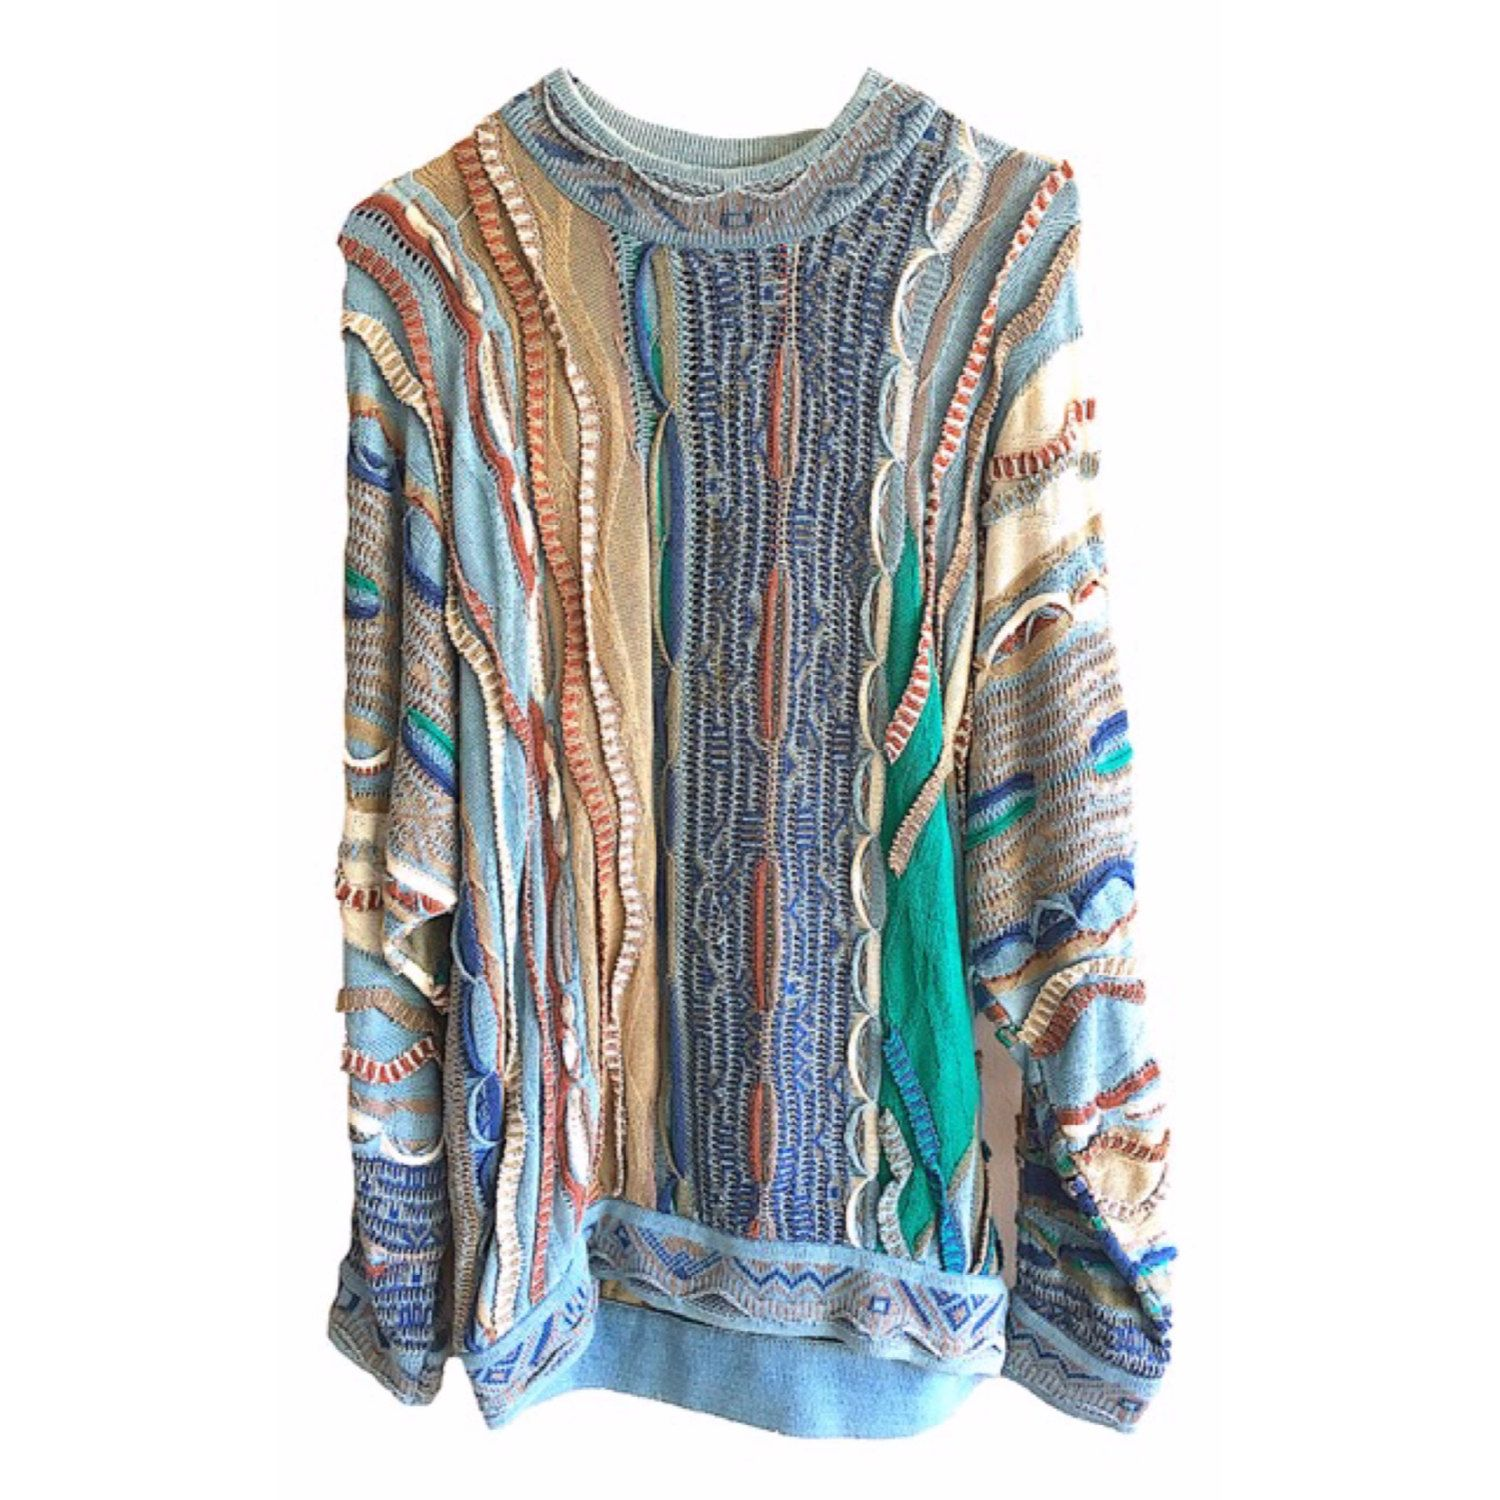 Cooji Blues Sweater Cotton Small mens womens vintage australia ...